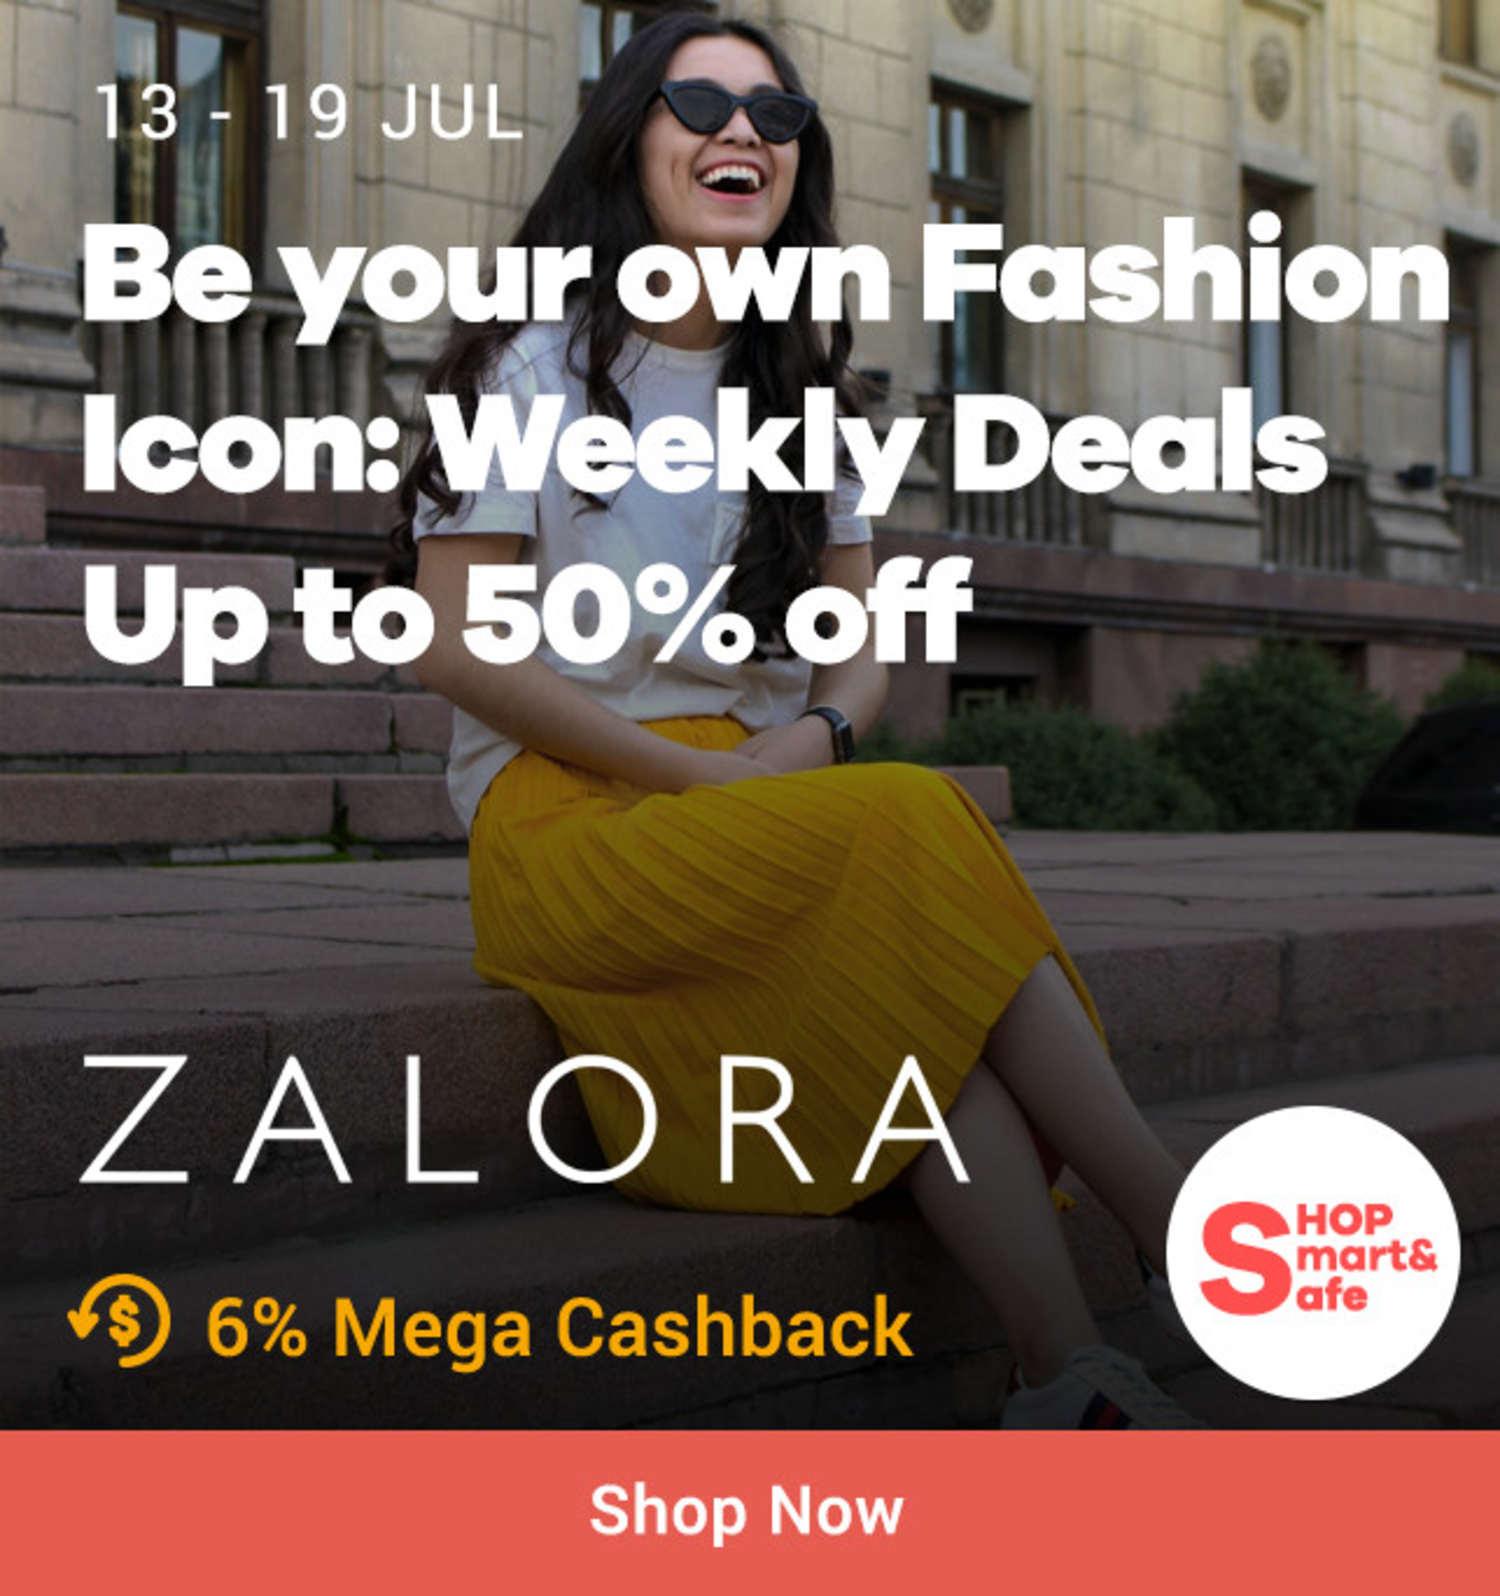 ZALORA: Be your own Fashion Icon Weekly Deals Up to 50% off